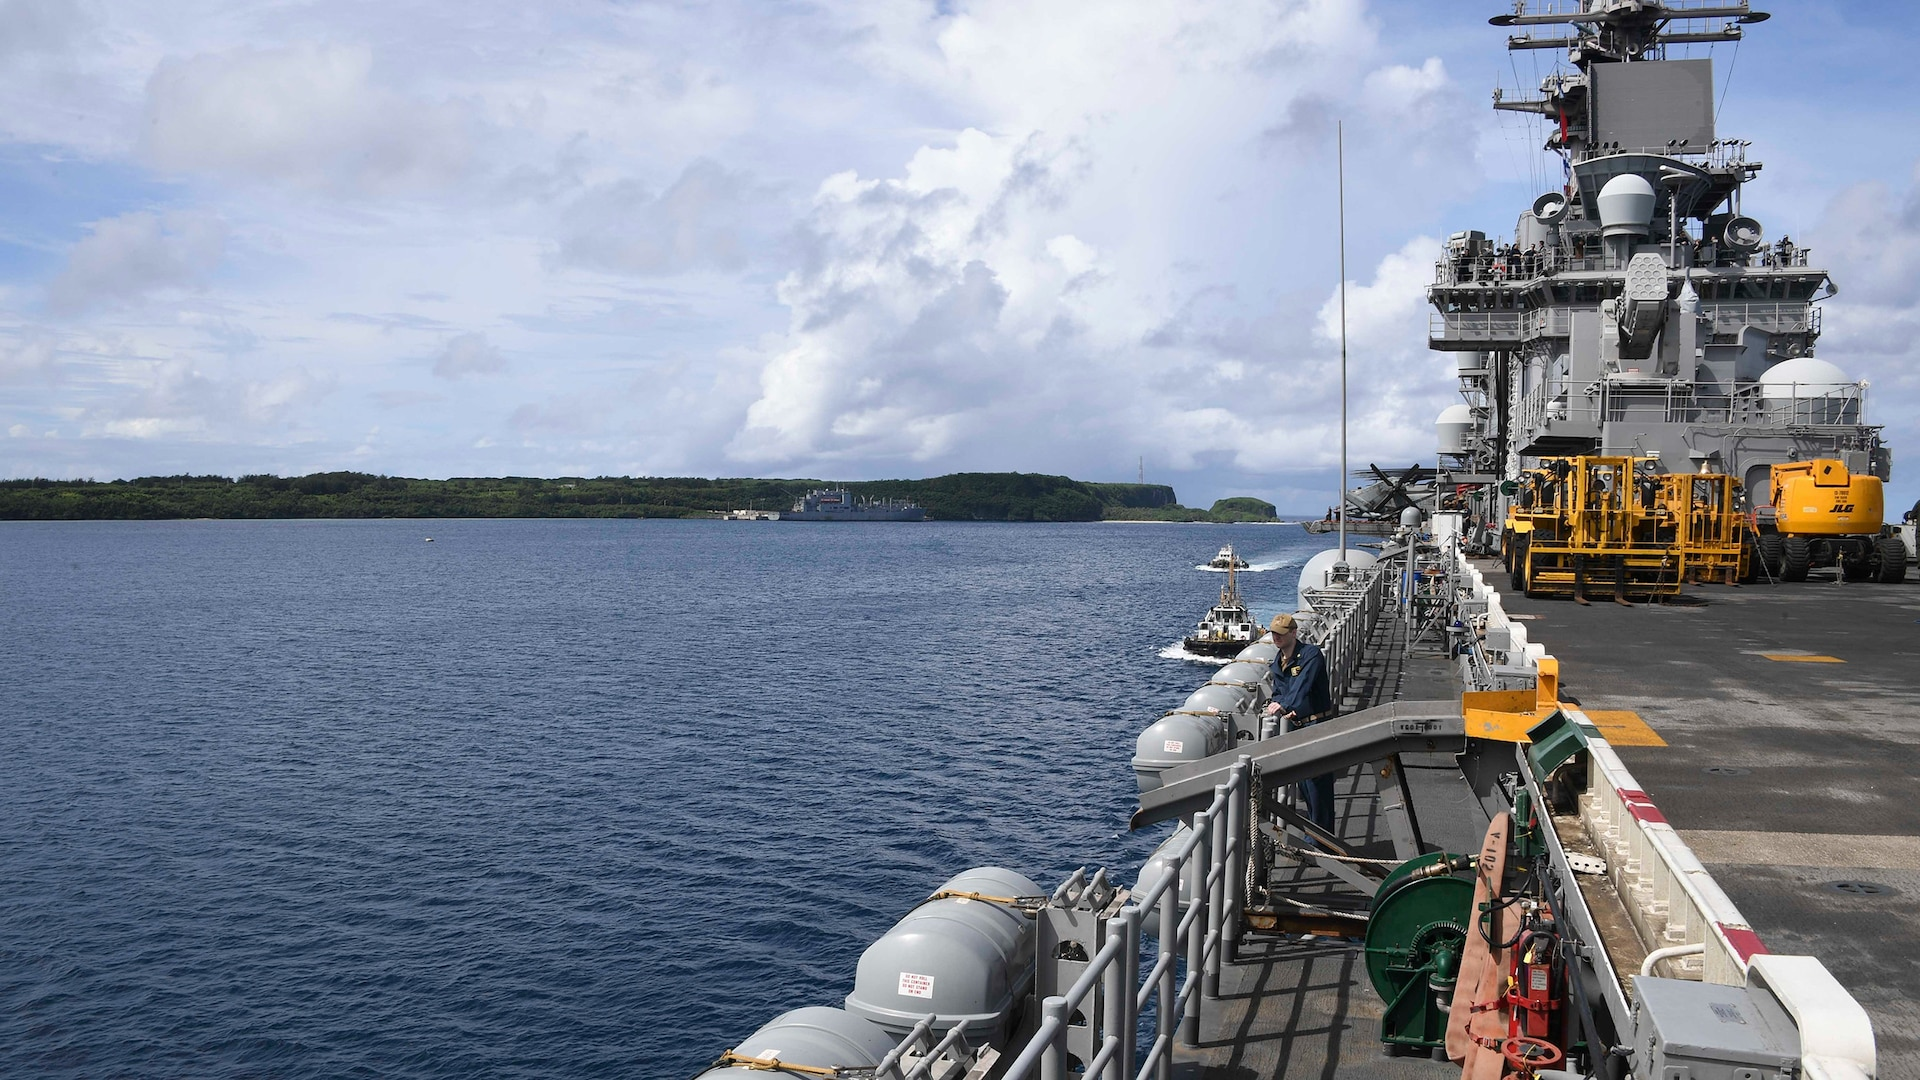 USS Boxer and 11th Marine Expeditionary Unit Arrive in Guam